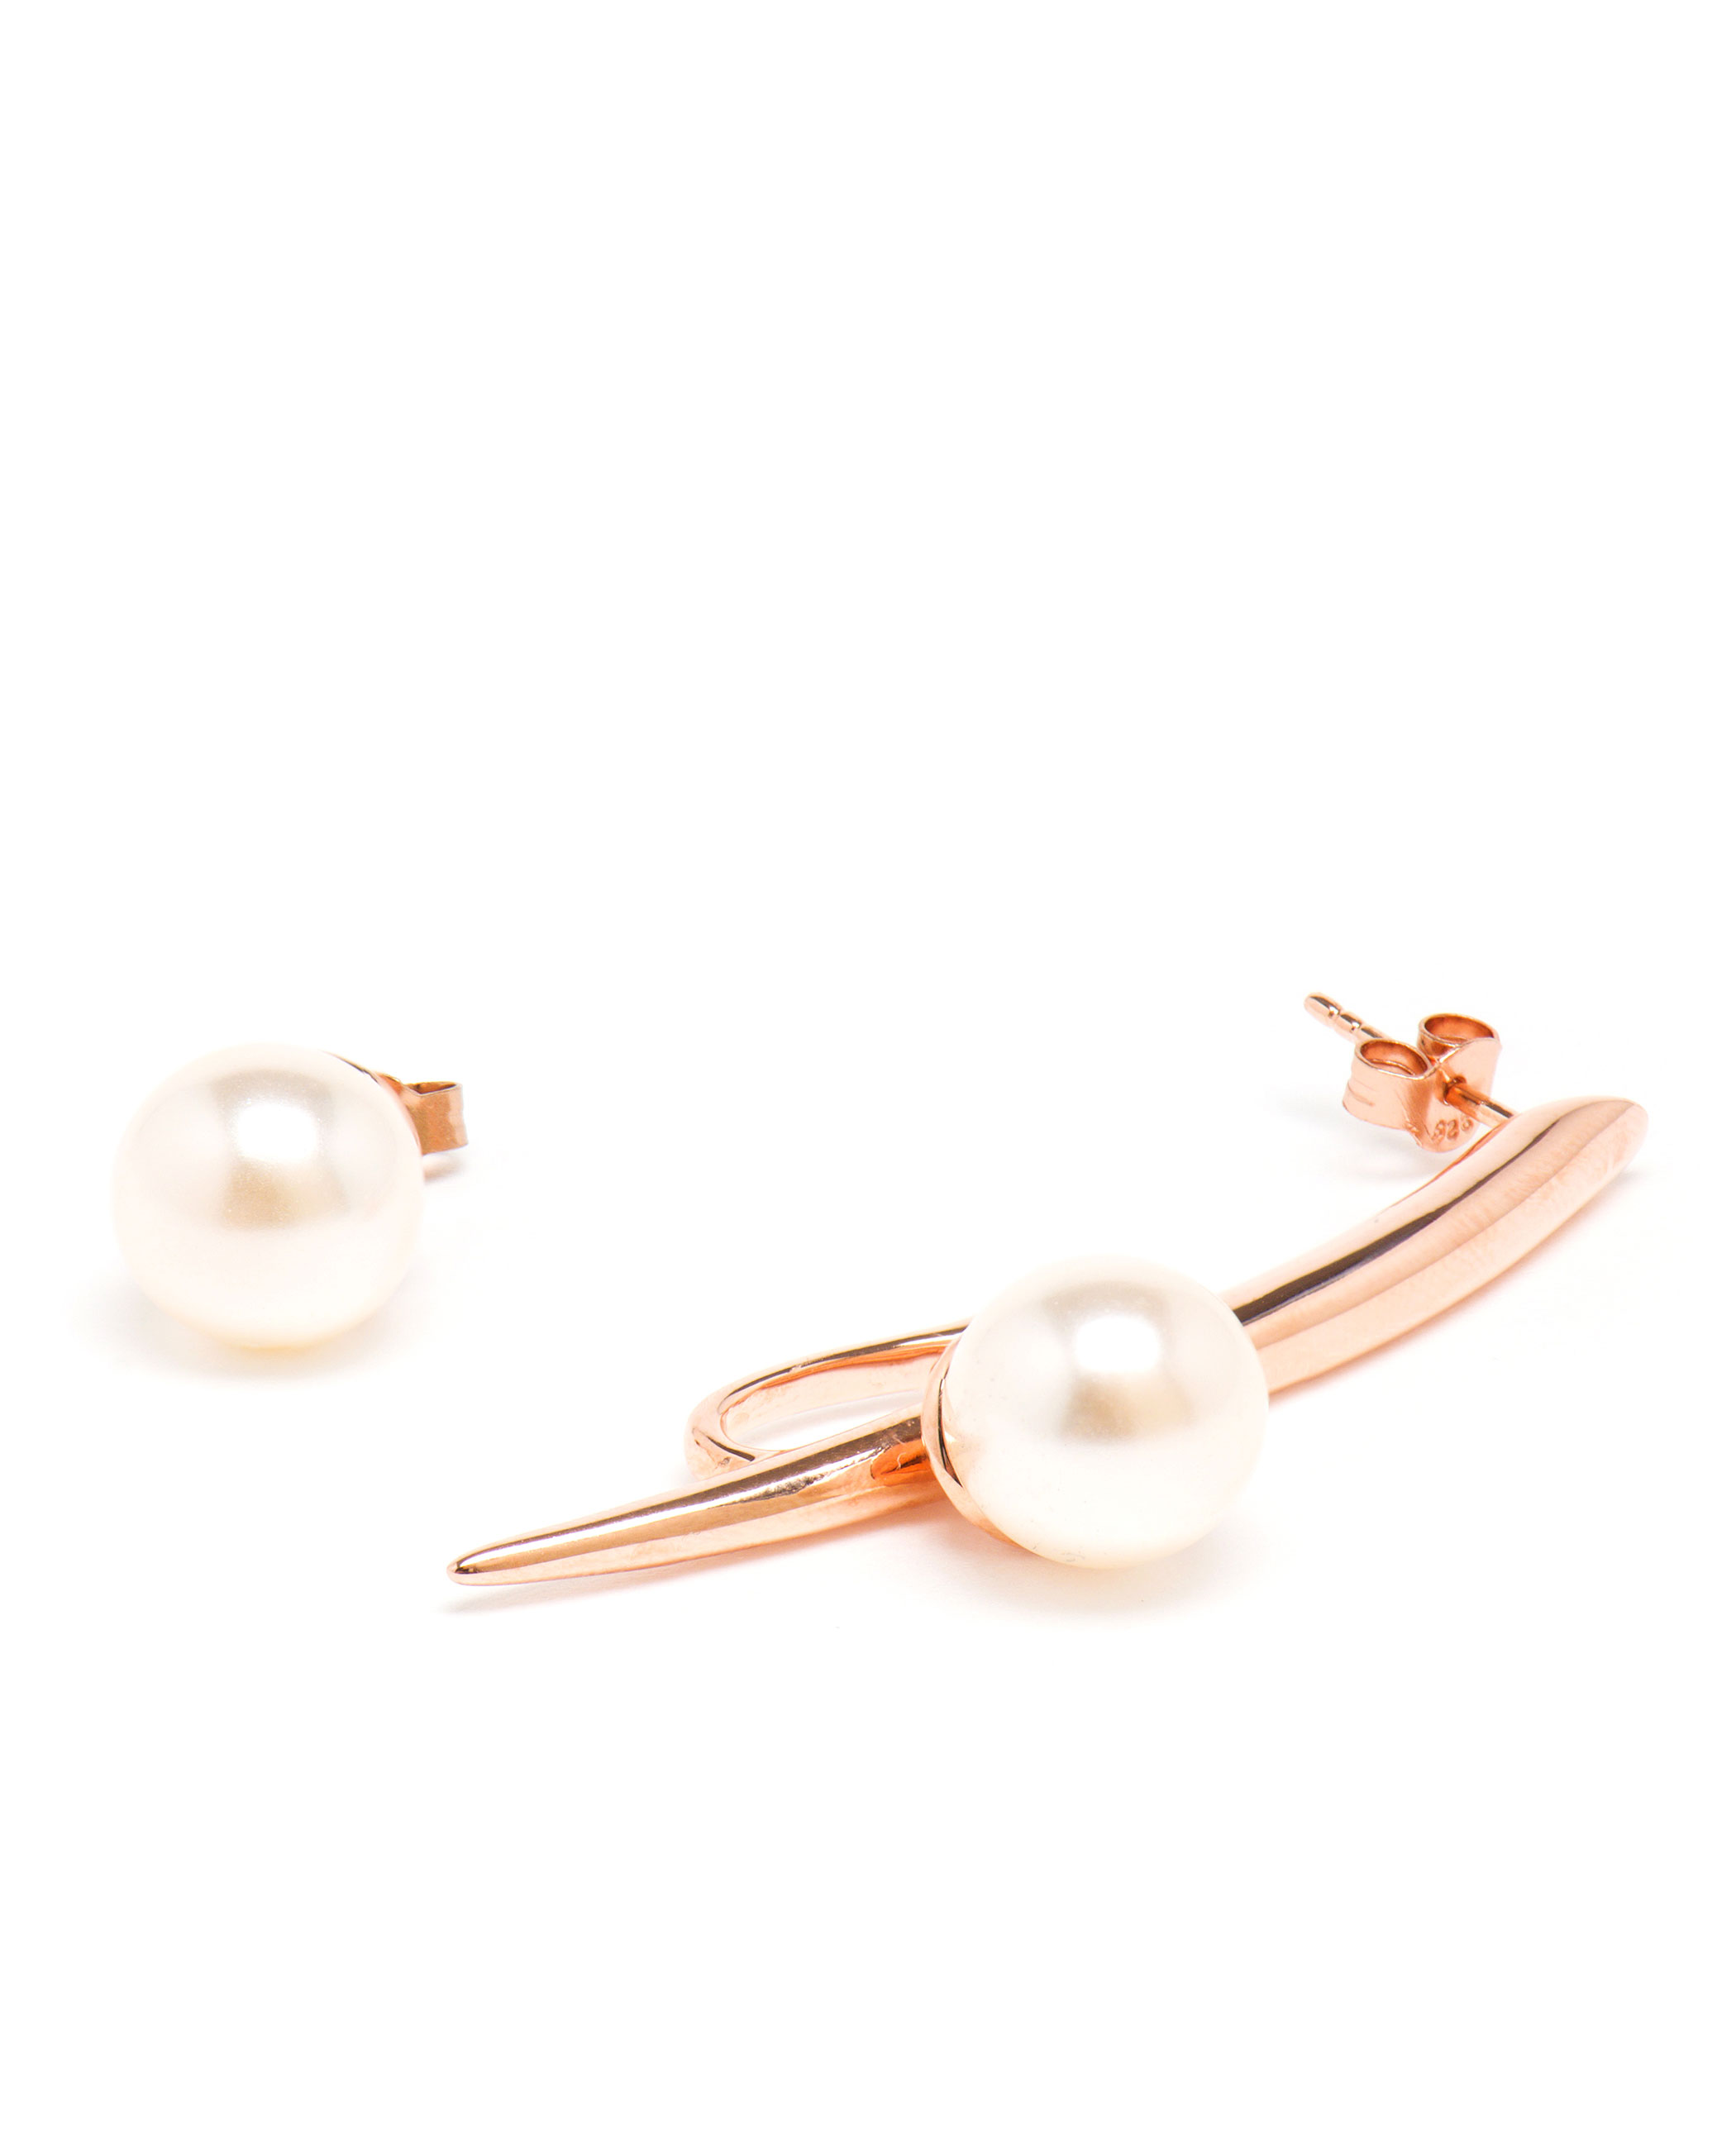 Ear Bar with Swarovski Pearls